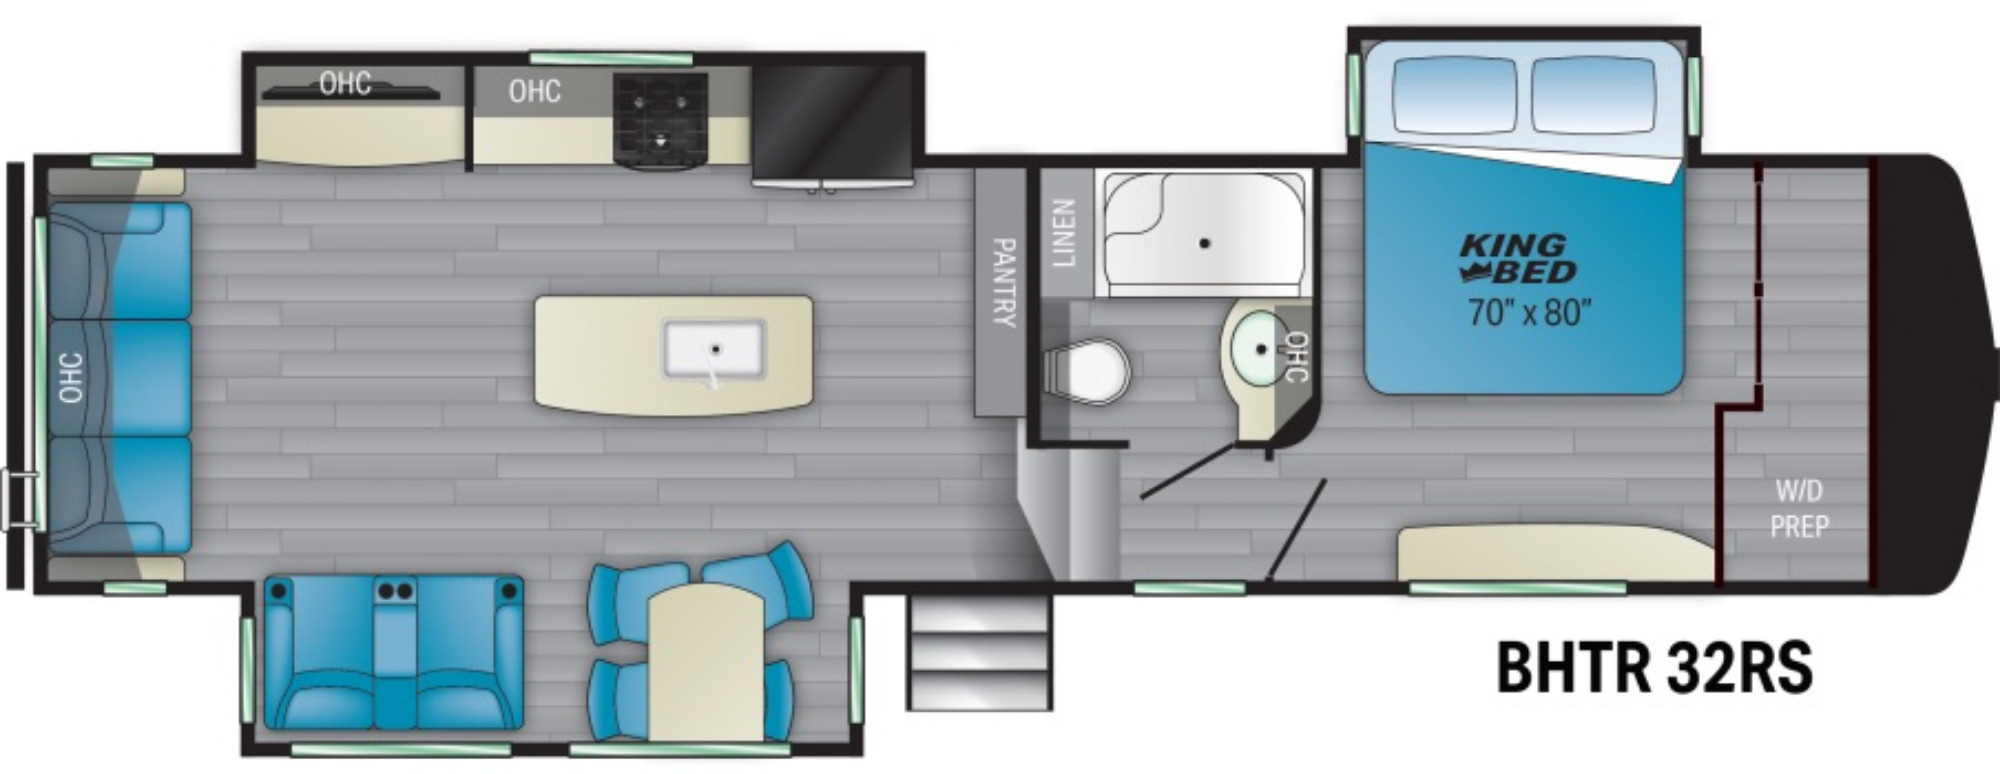 View Floor Plan for 2021 HEARTLAND BIGHORN TRAVELER 32RS